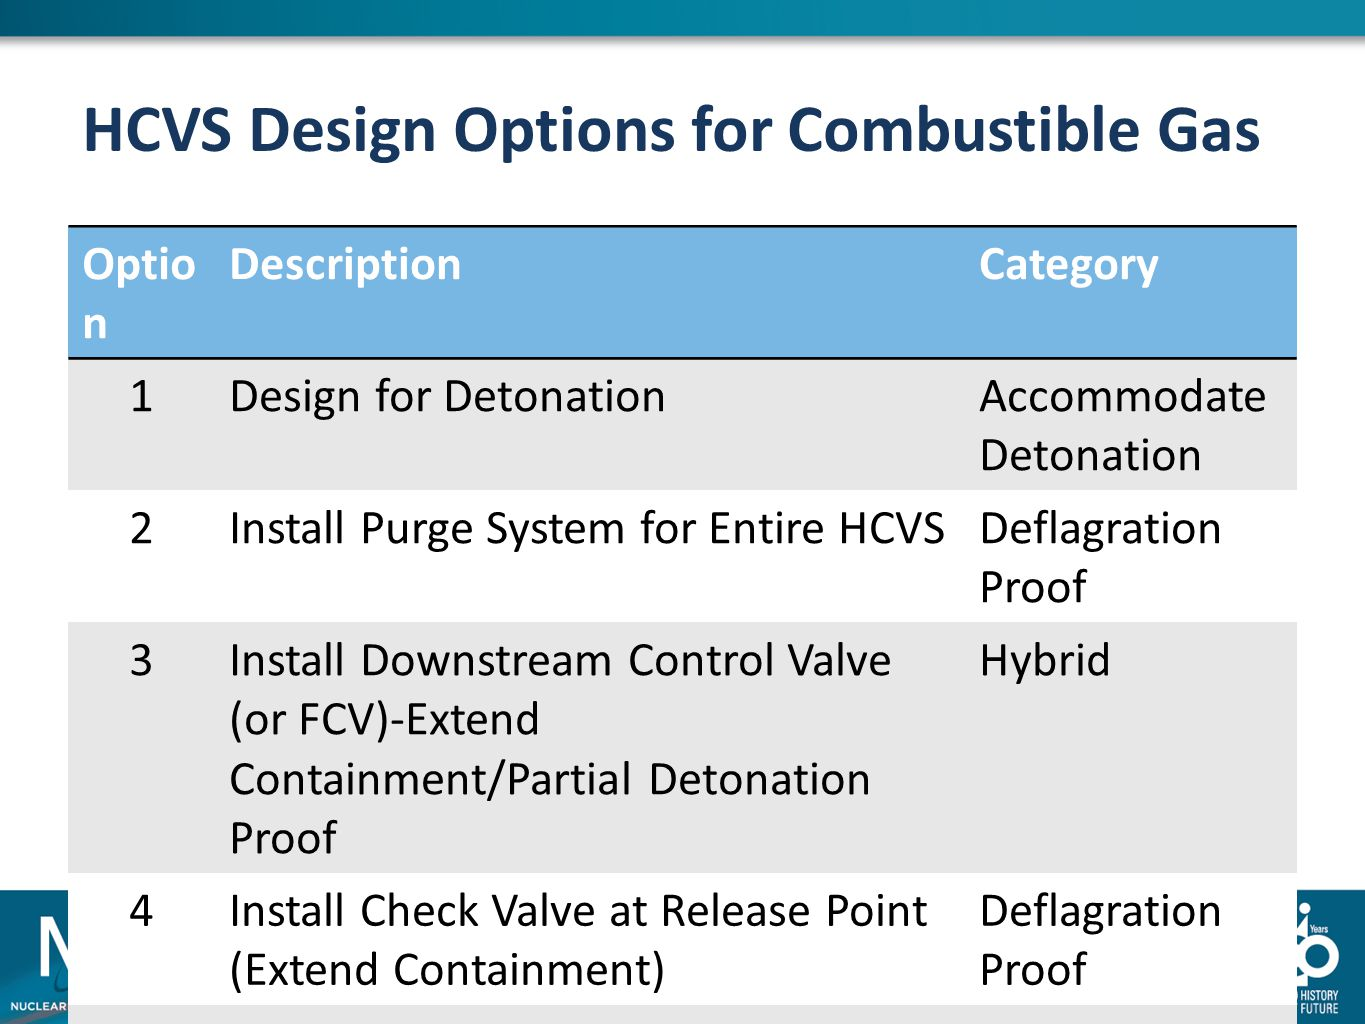 HCVS Design Options for Combustible Gas